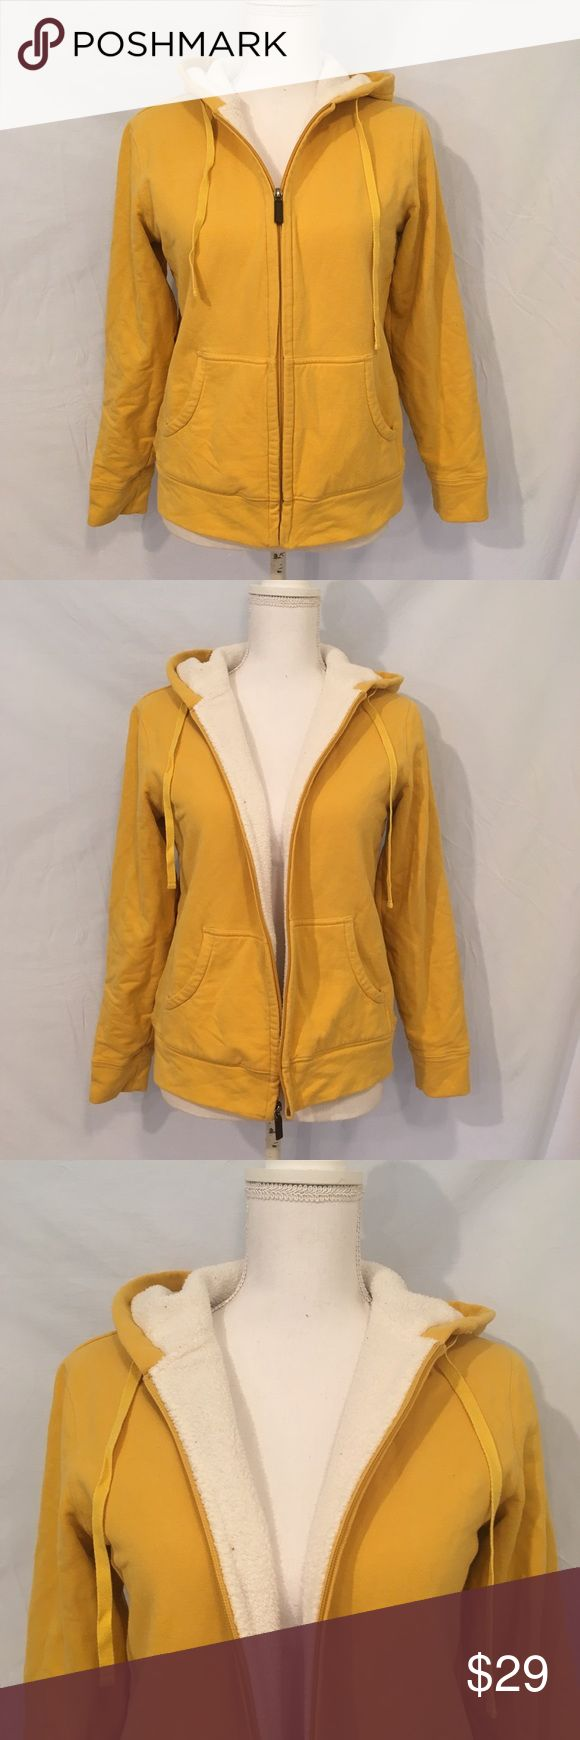 Women's LANDS' END Yellow Zip Up Hoodie Women's LANDS' END zip up jacket. Color is yellow with white inside. Very warm and in great condition, only worn a few times. Lands' End Tops Sweatshirts & Hoodies